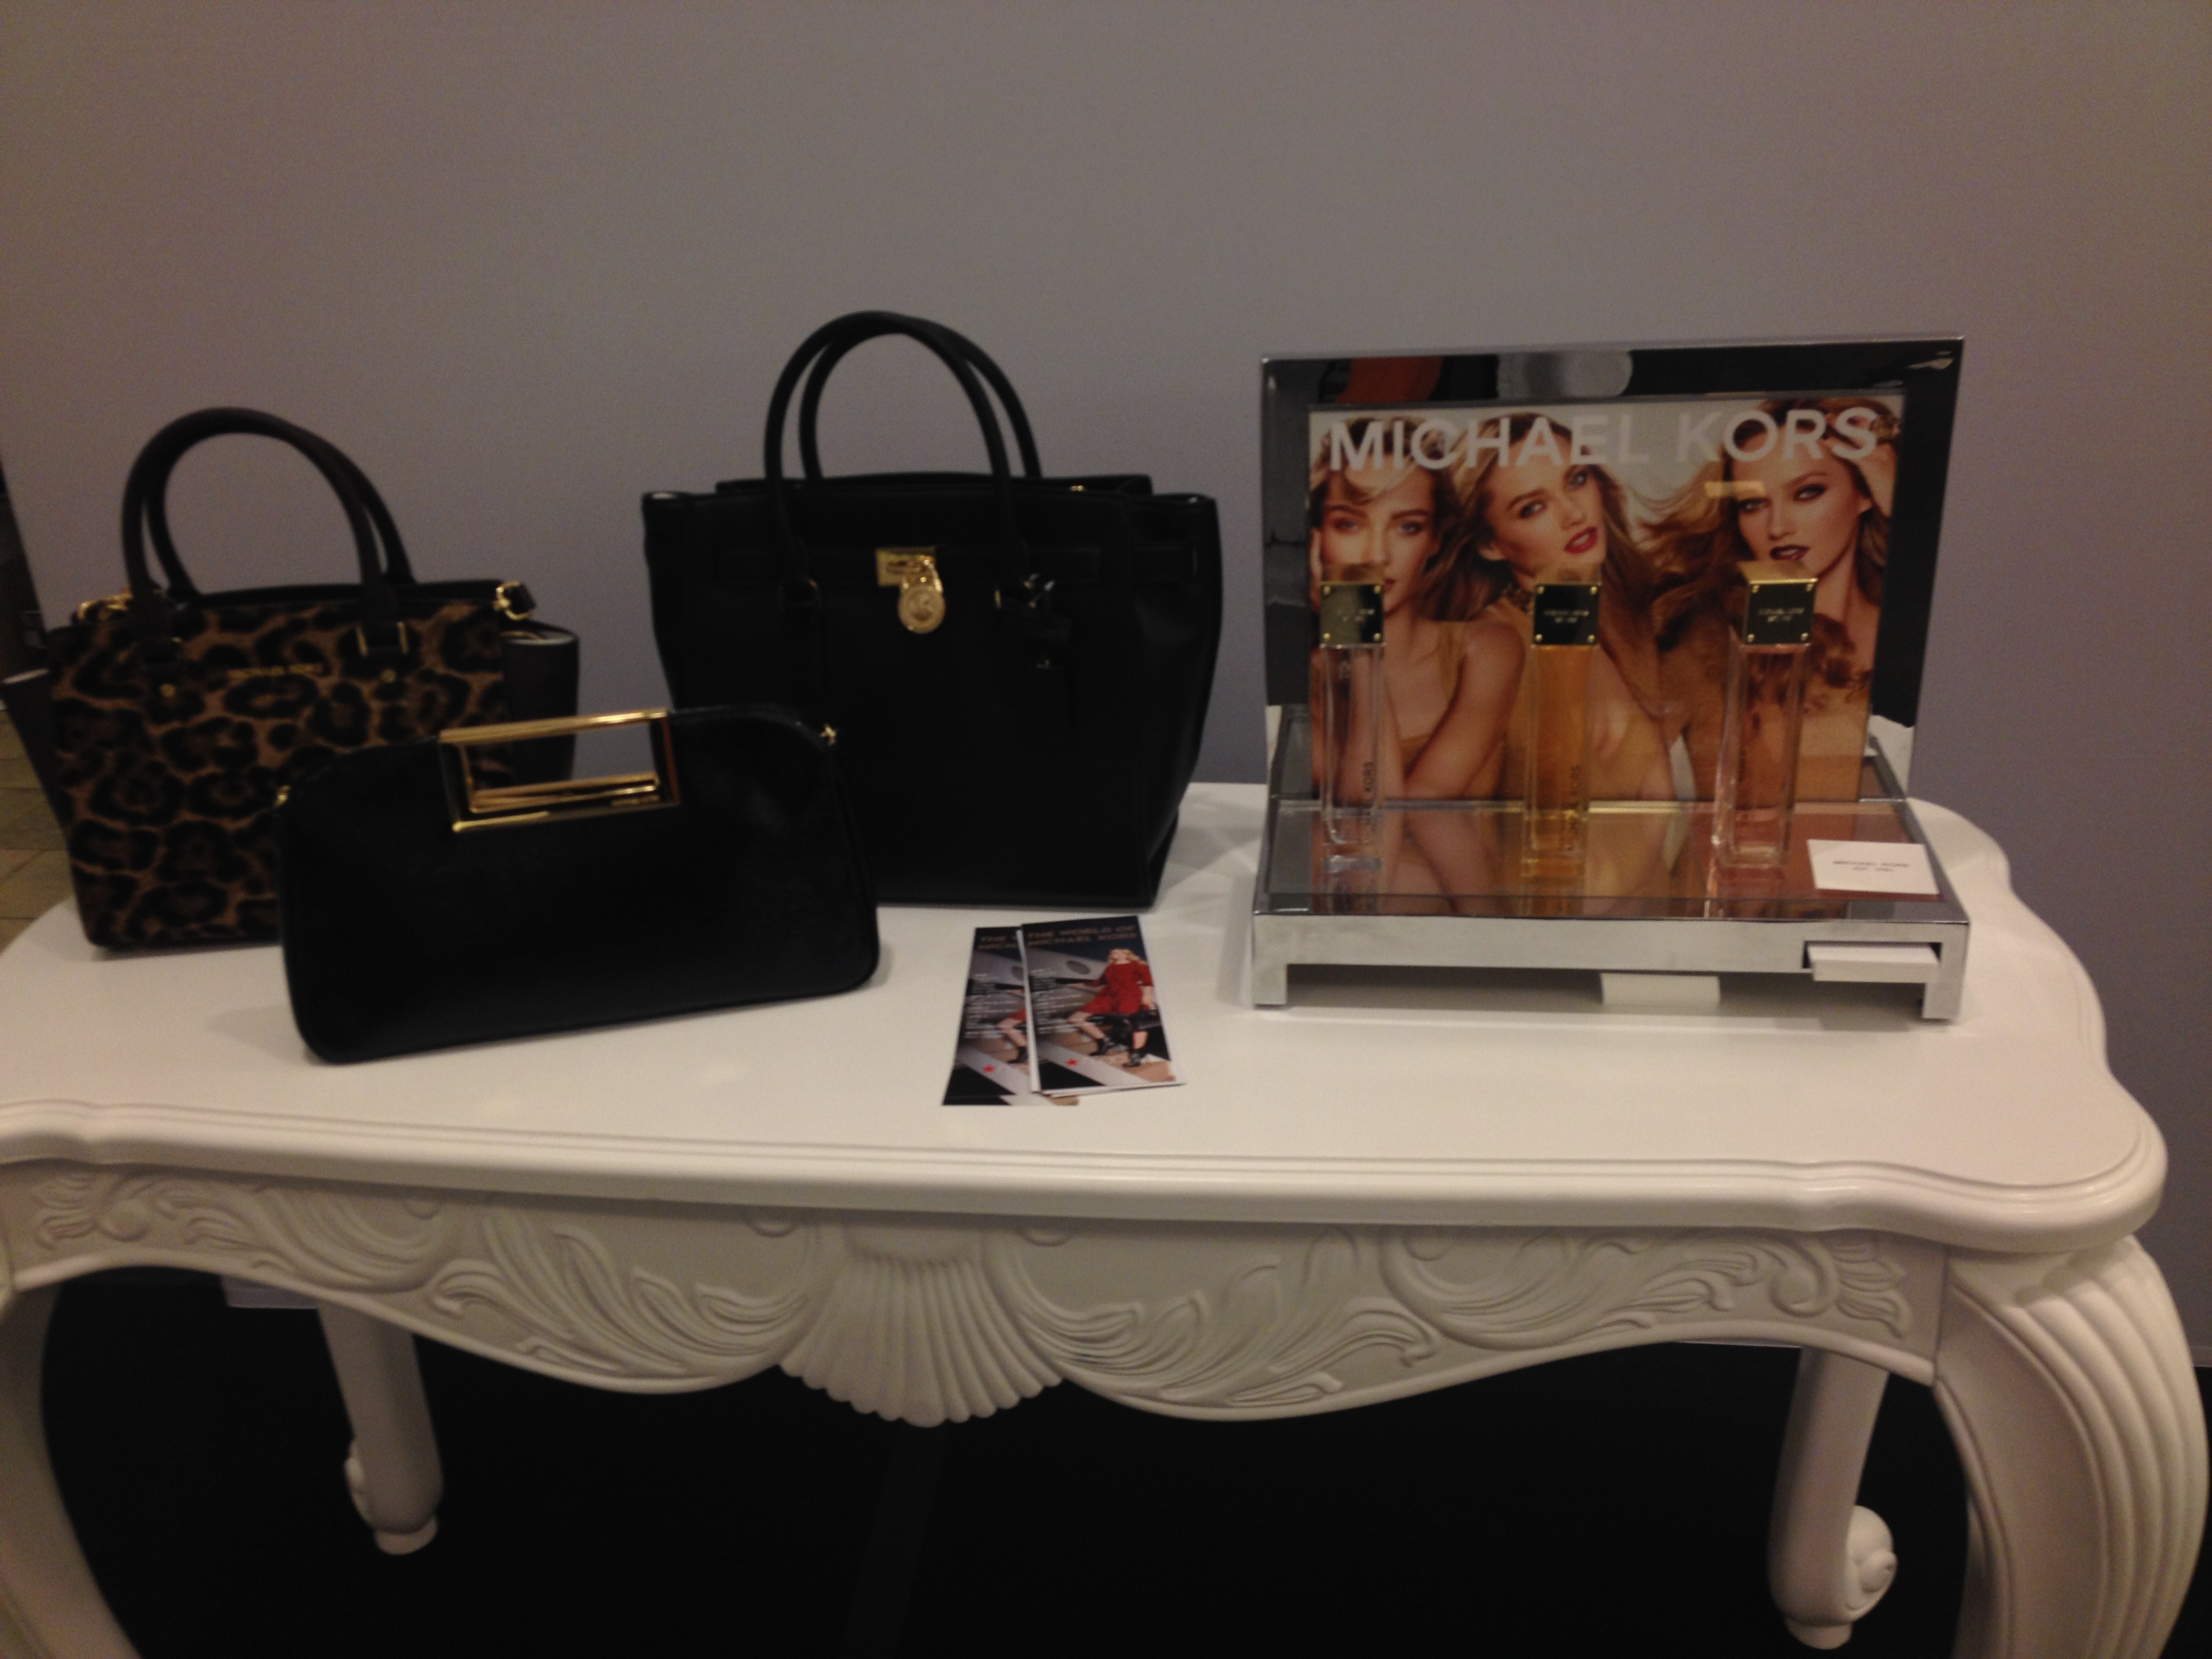 New accessory and fragrance merchandise from the new Fall Michael Kors line.